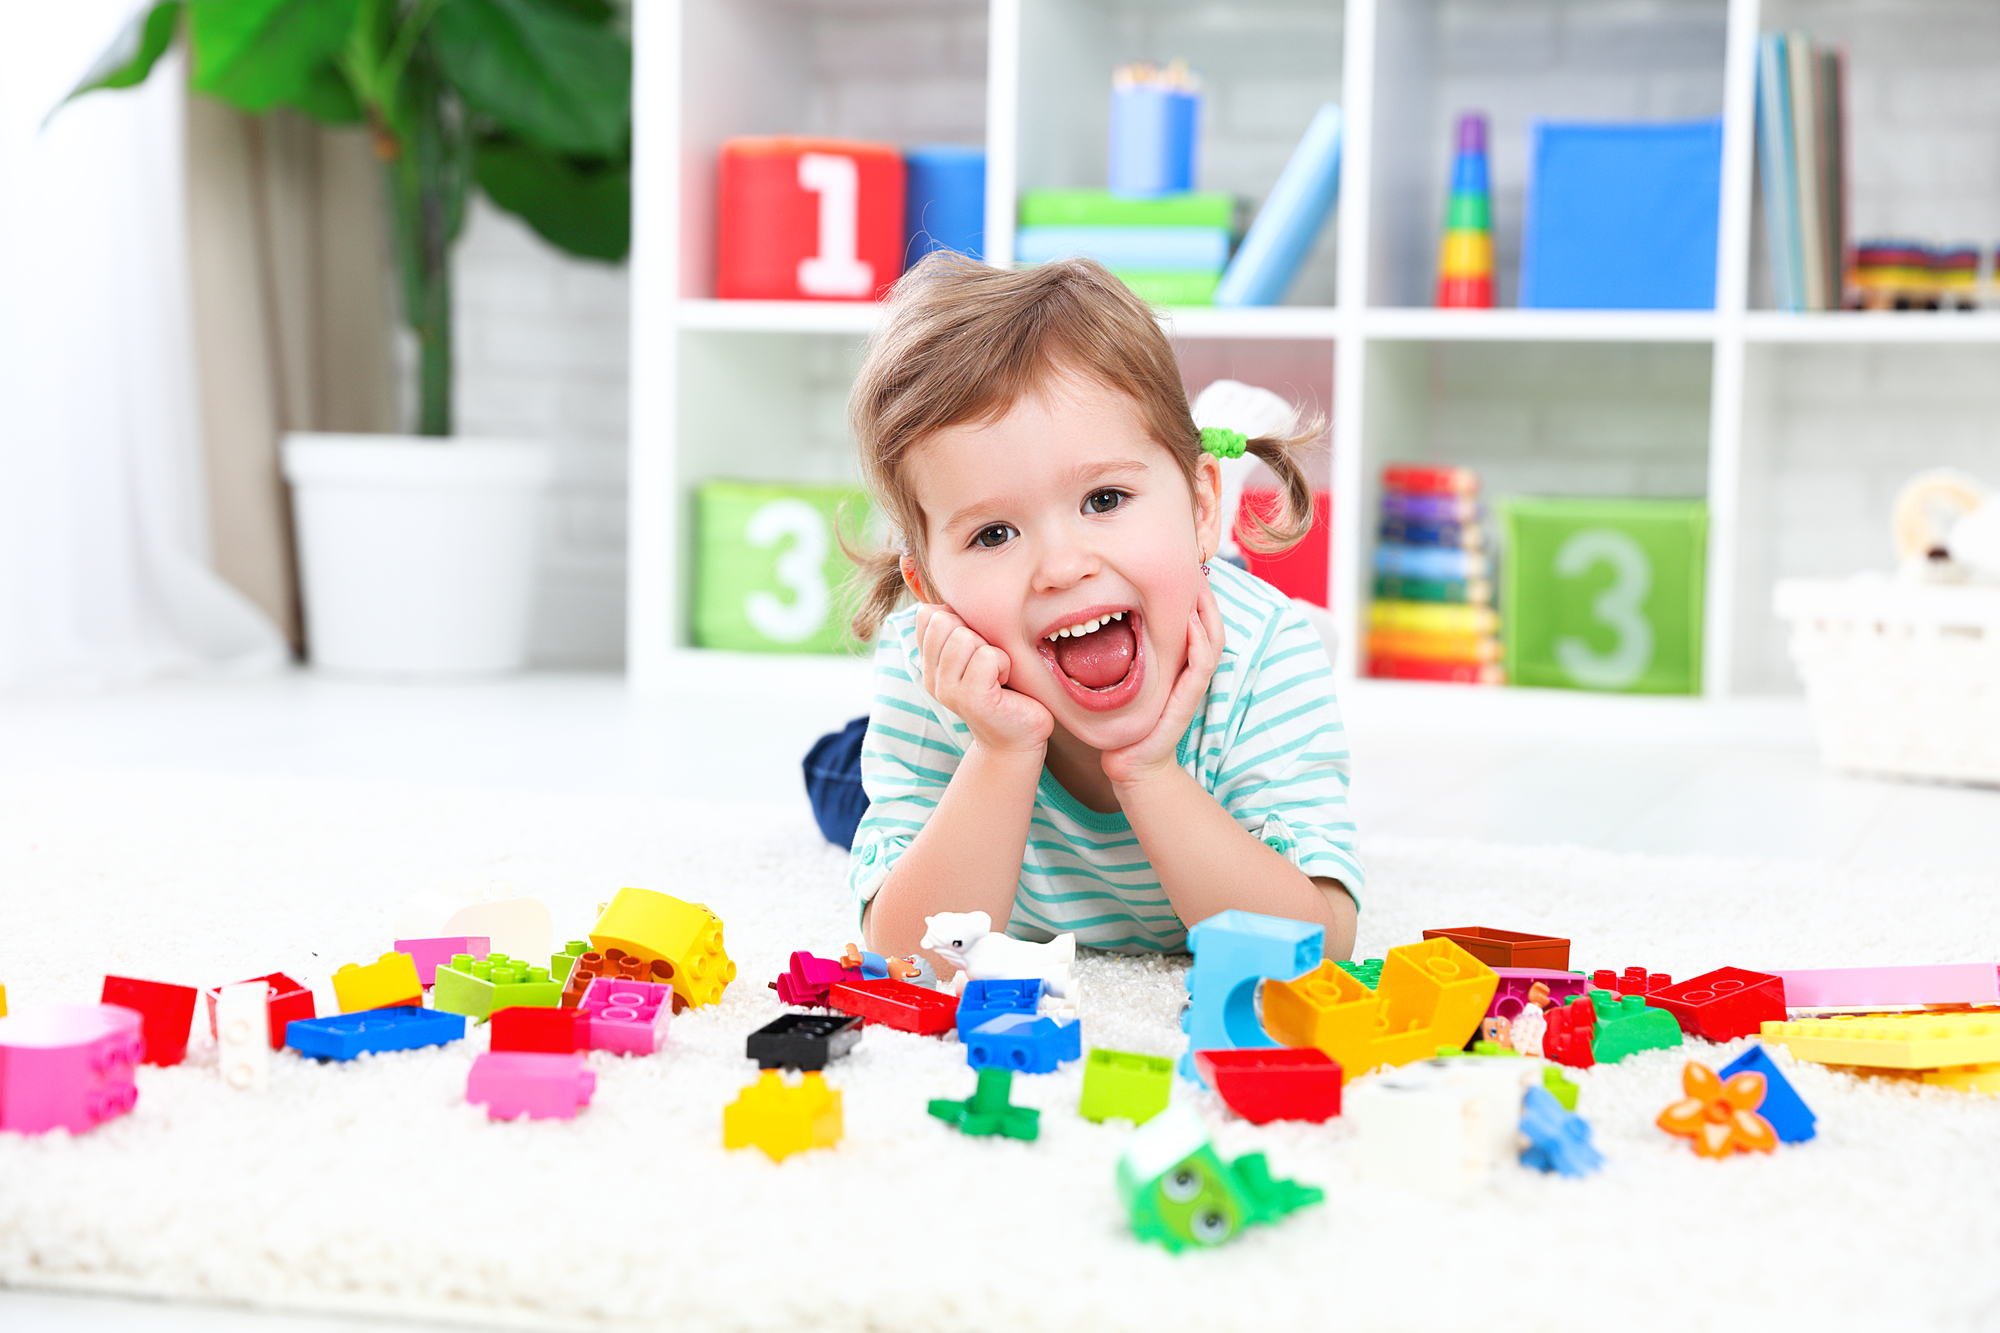 happy child girl laughing and playing with toys constructor